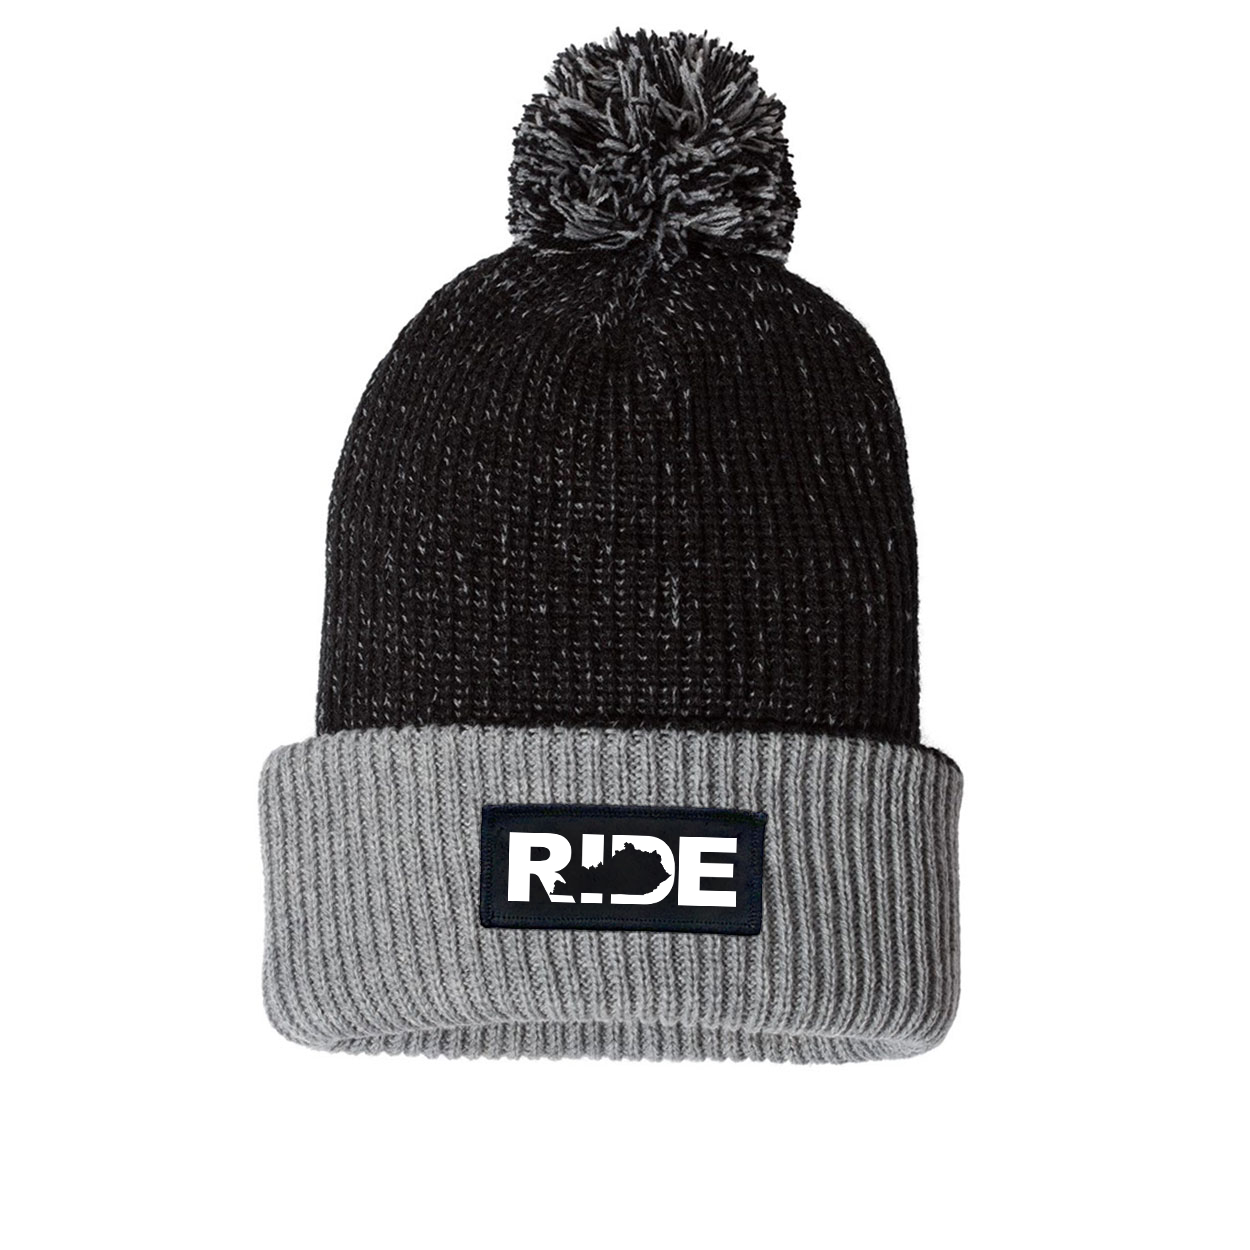 Ride Kentucky Night Out Woven Patch Roll Up Pom Knit Beanie Black/Gray (White Logo)